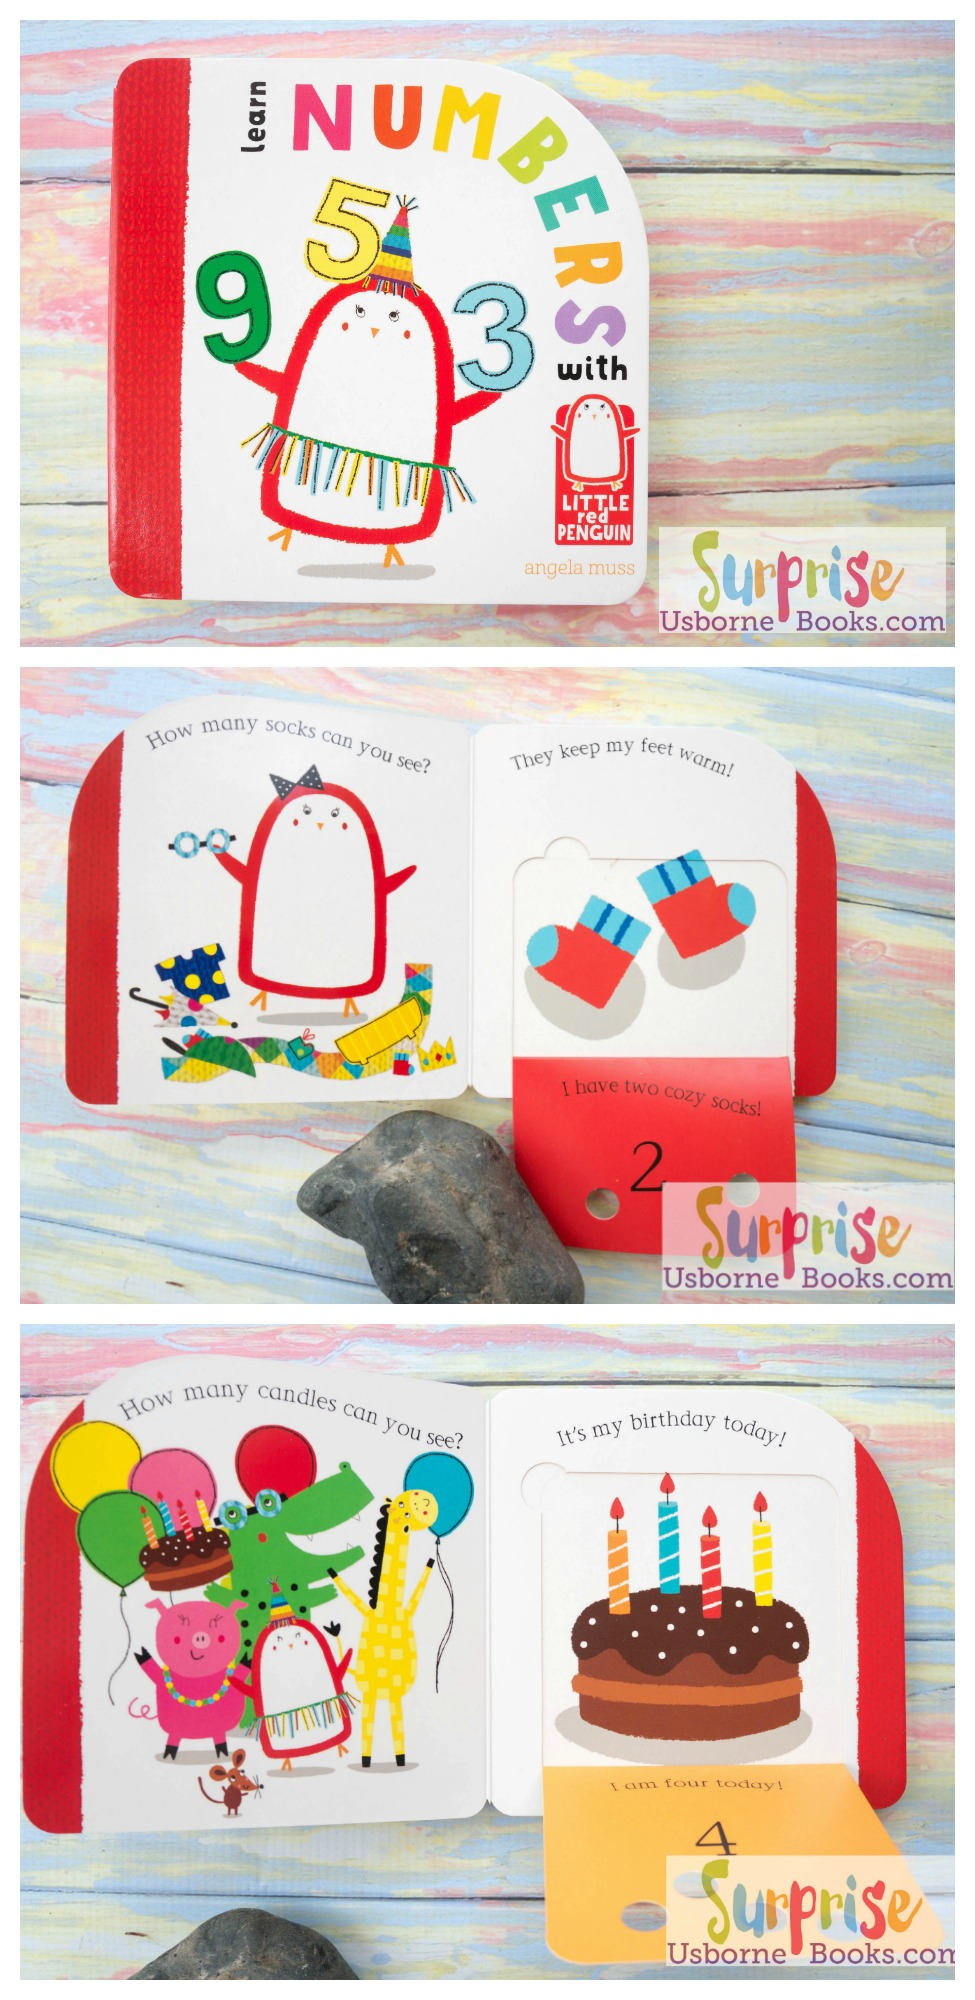 Little Red Penguin Learn Numbers - Surprise Usborne Books